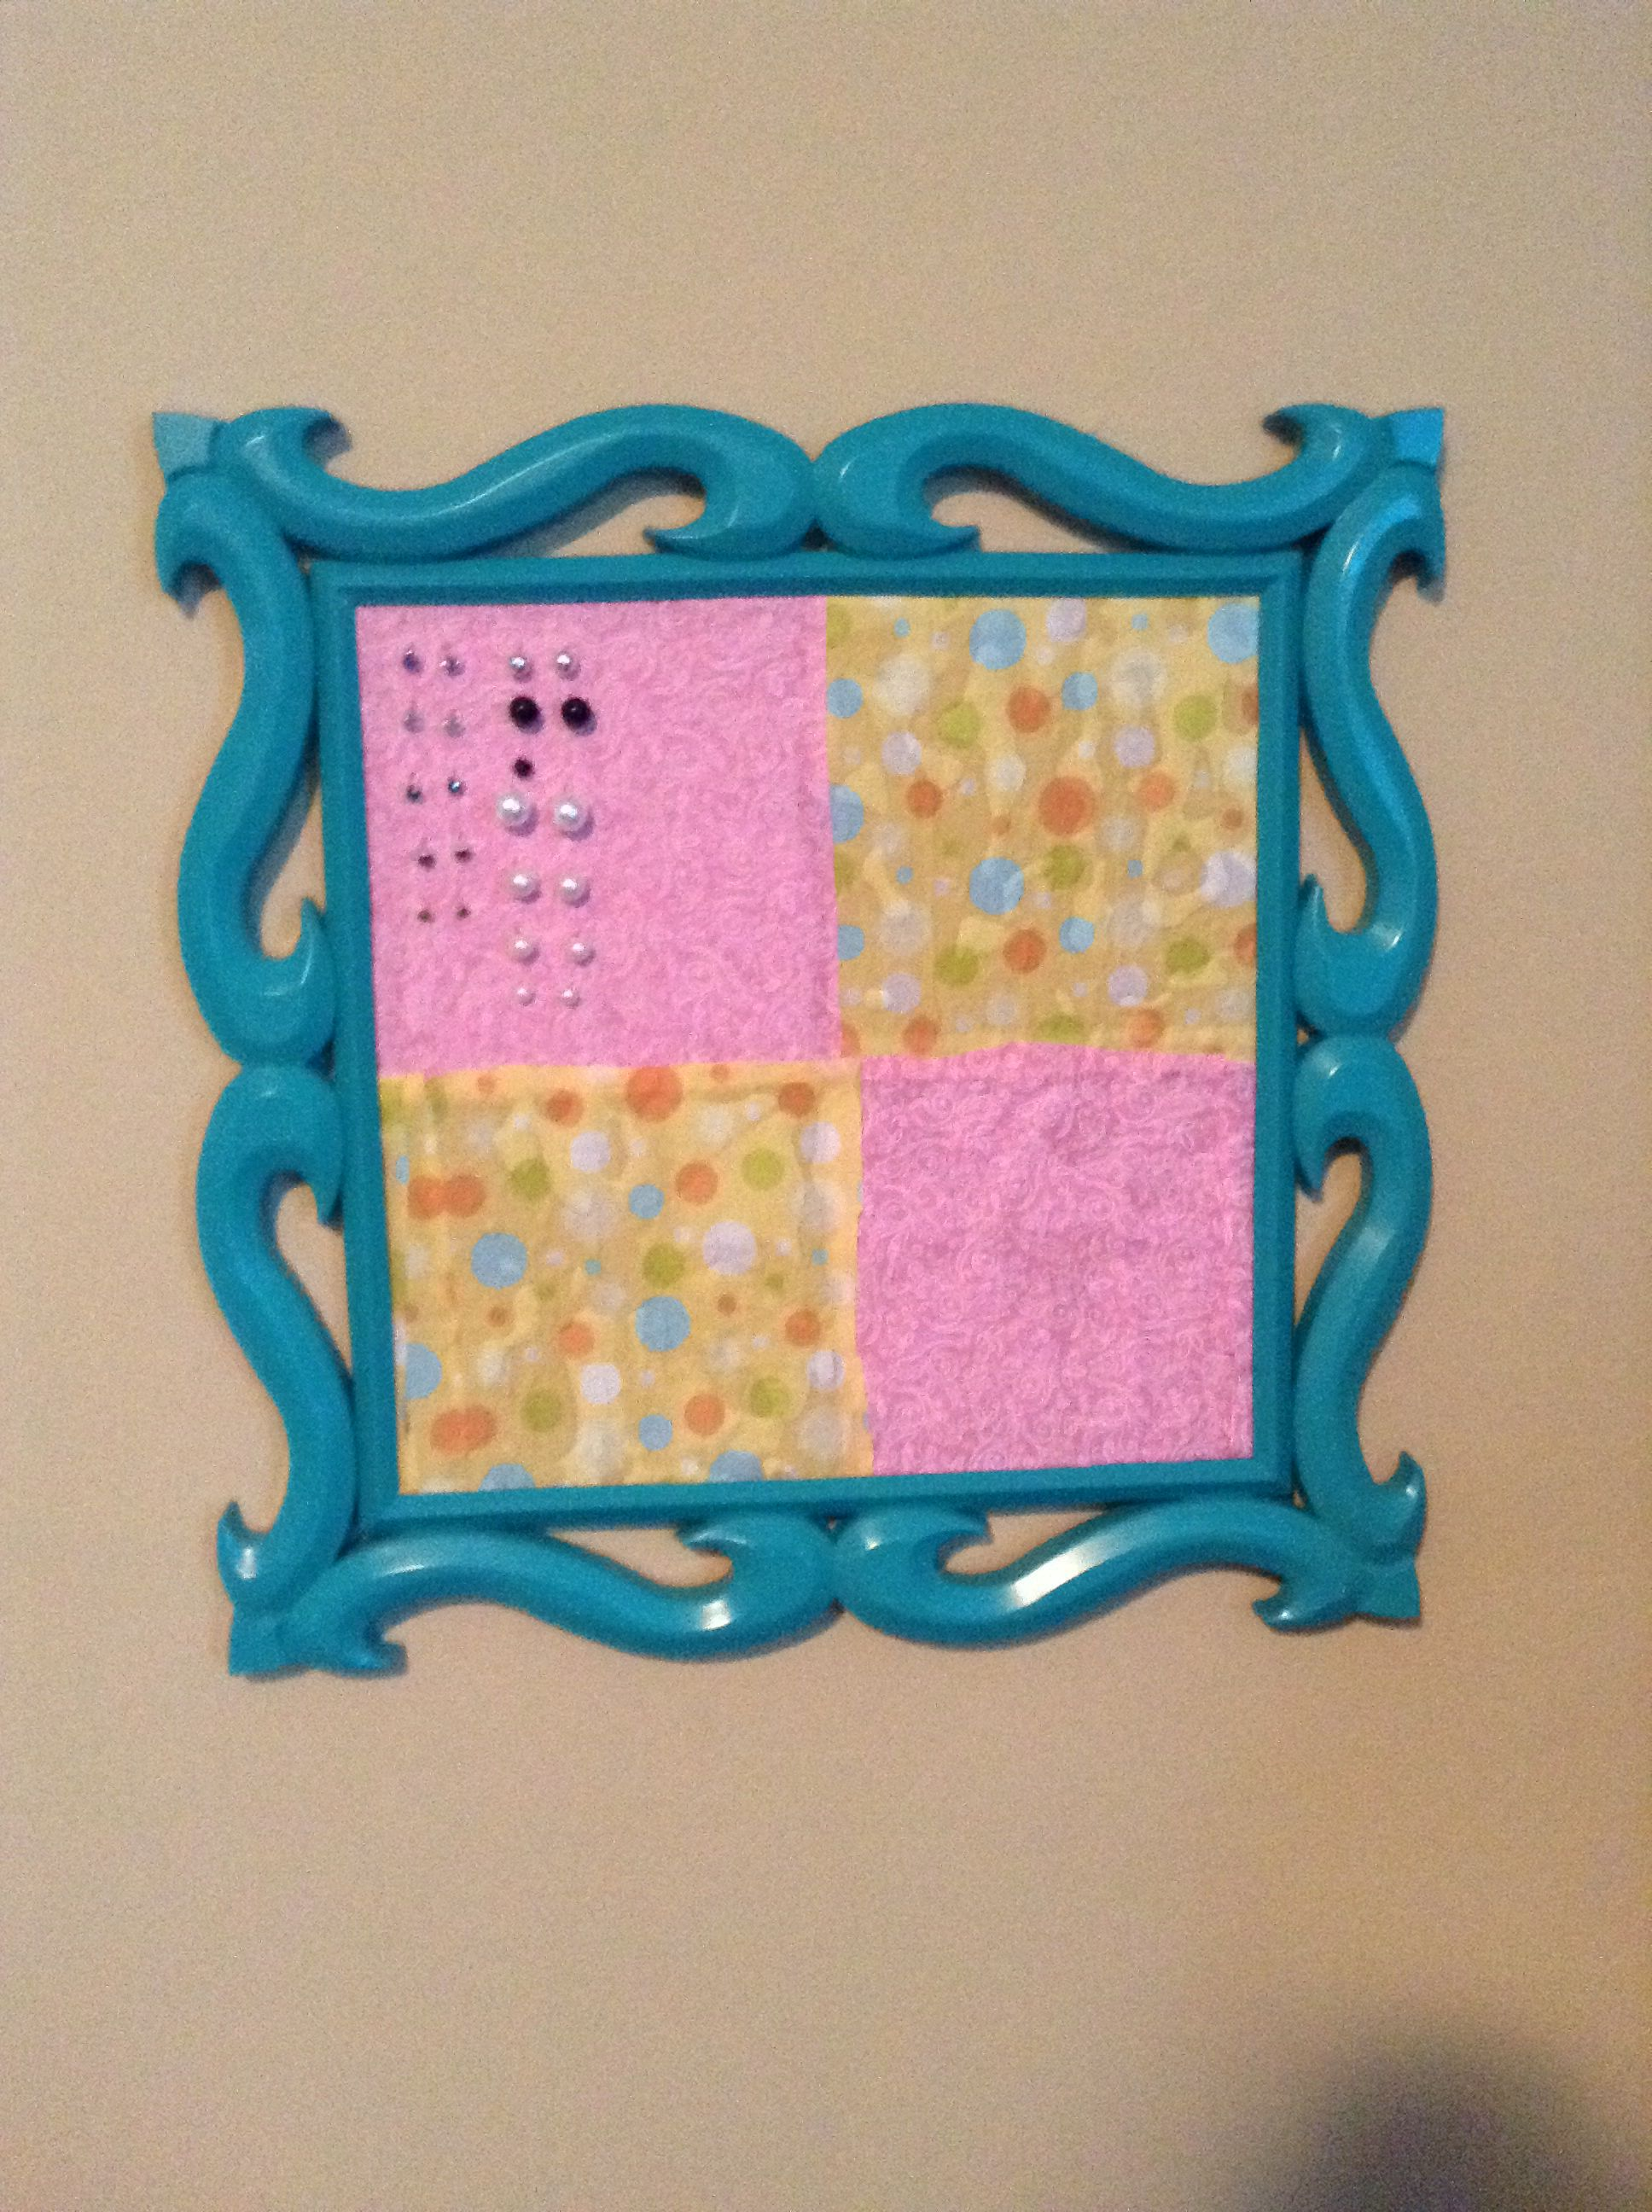 Diy Jewelry Holder Cute Easy And Cheap Made With Cork Board Fabric